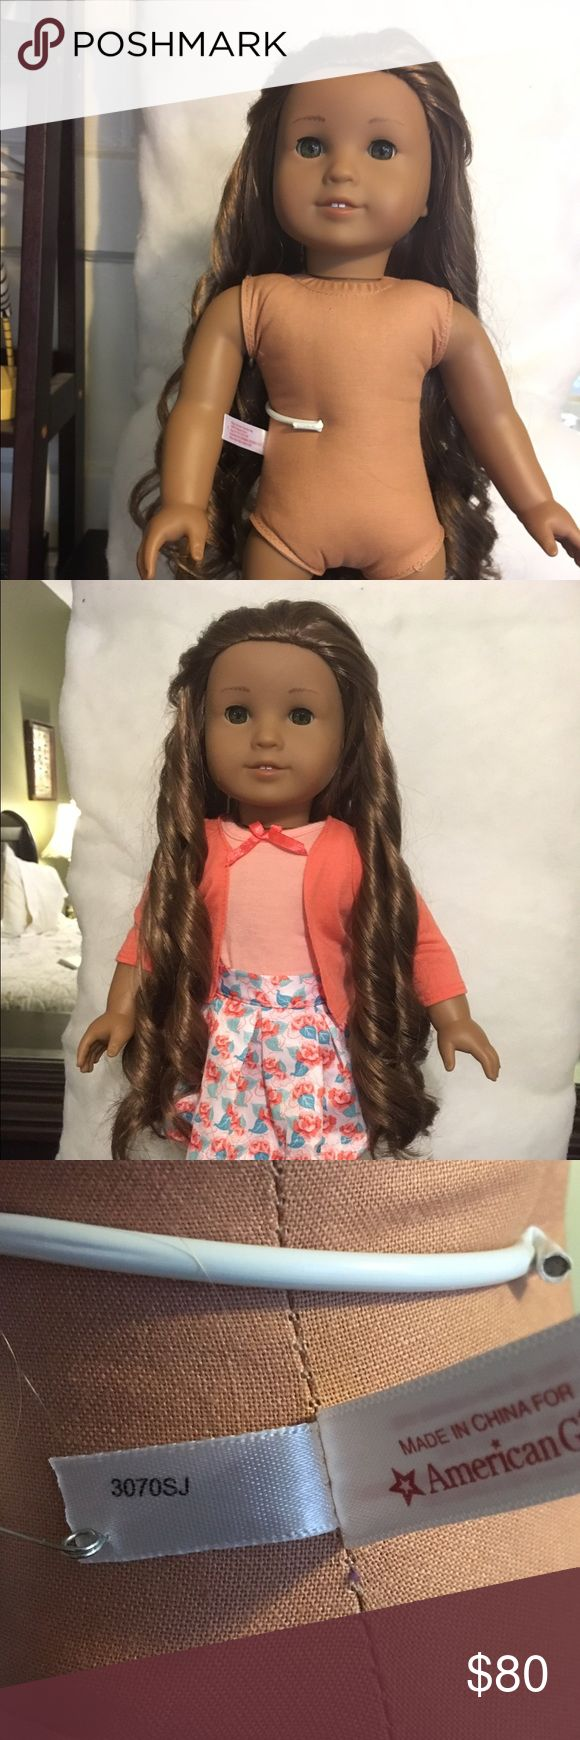 American Girl Doll American Doll Retired/ has been most of the time displayed/ she will make a little girl happy / smoke free home comes with one original American Girl outfit  / and one not ortigal which she's wearing on photo / smoke free home AMERICAN GIRL DOLL Other